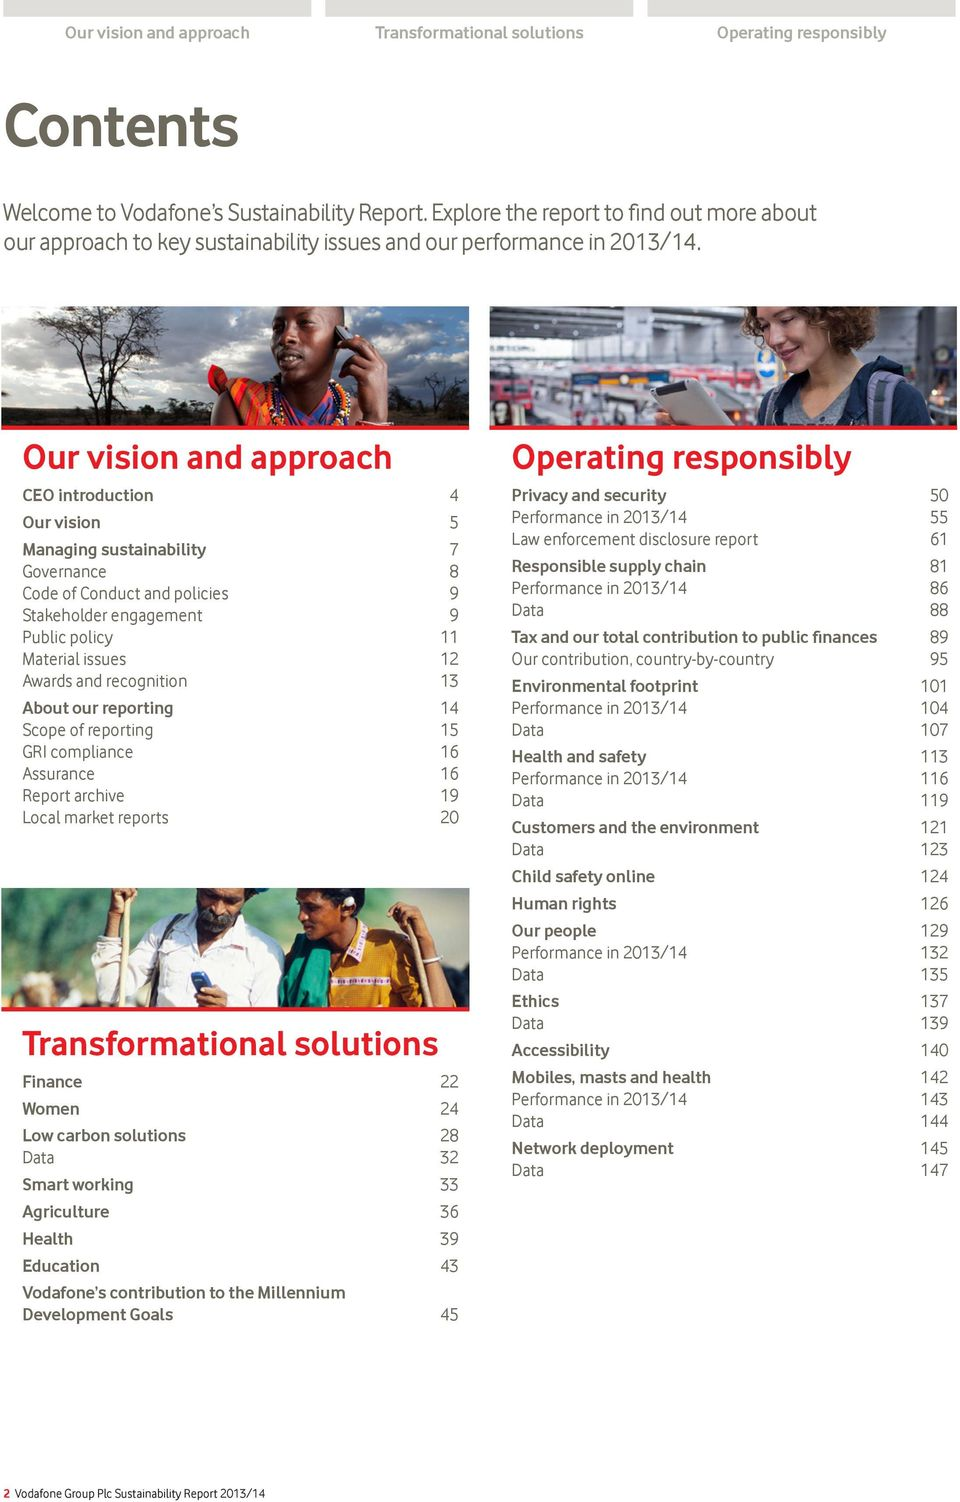 Our vision and approach CEO introduction 4 Our vision 5 Managing sustainability 7 Governance 8 Code of Conduct and policies 9 Stakeholder engagement 9 Public policy 11 Material issues 12 Awards and